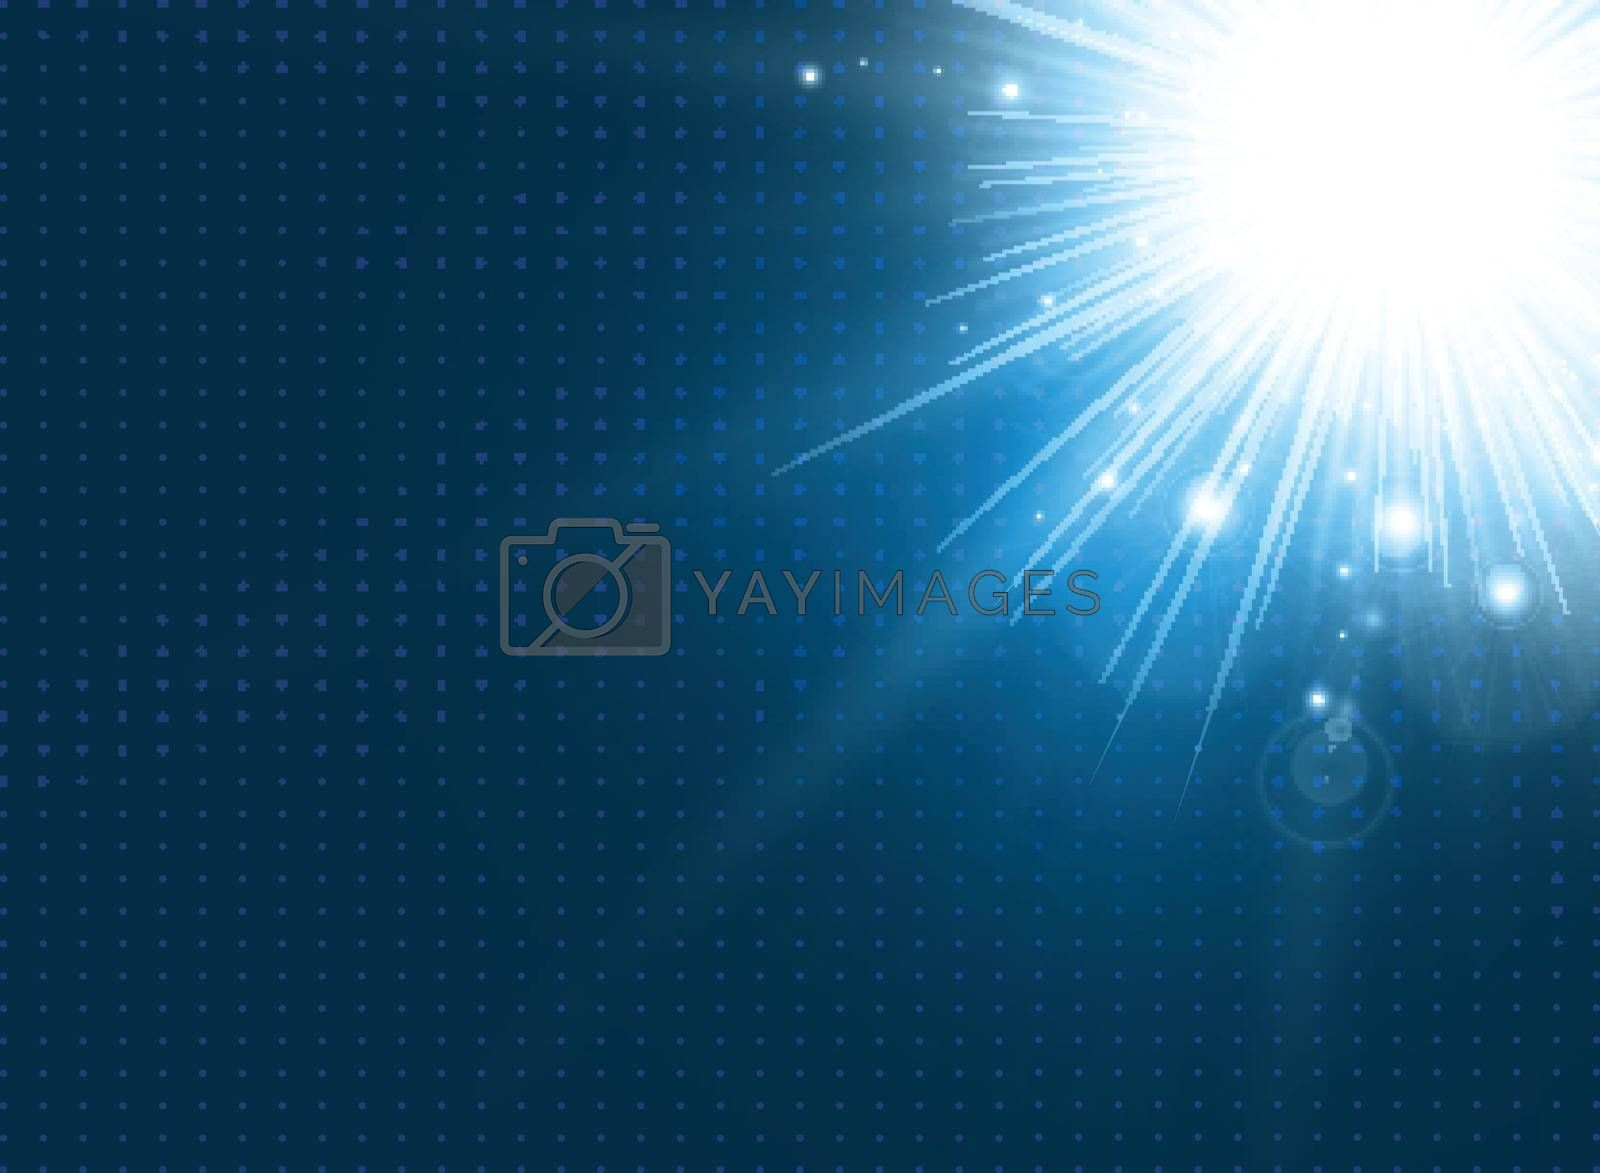 Abstract technology with lighting burst on blue background. Vector illustration